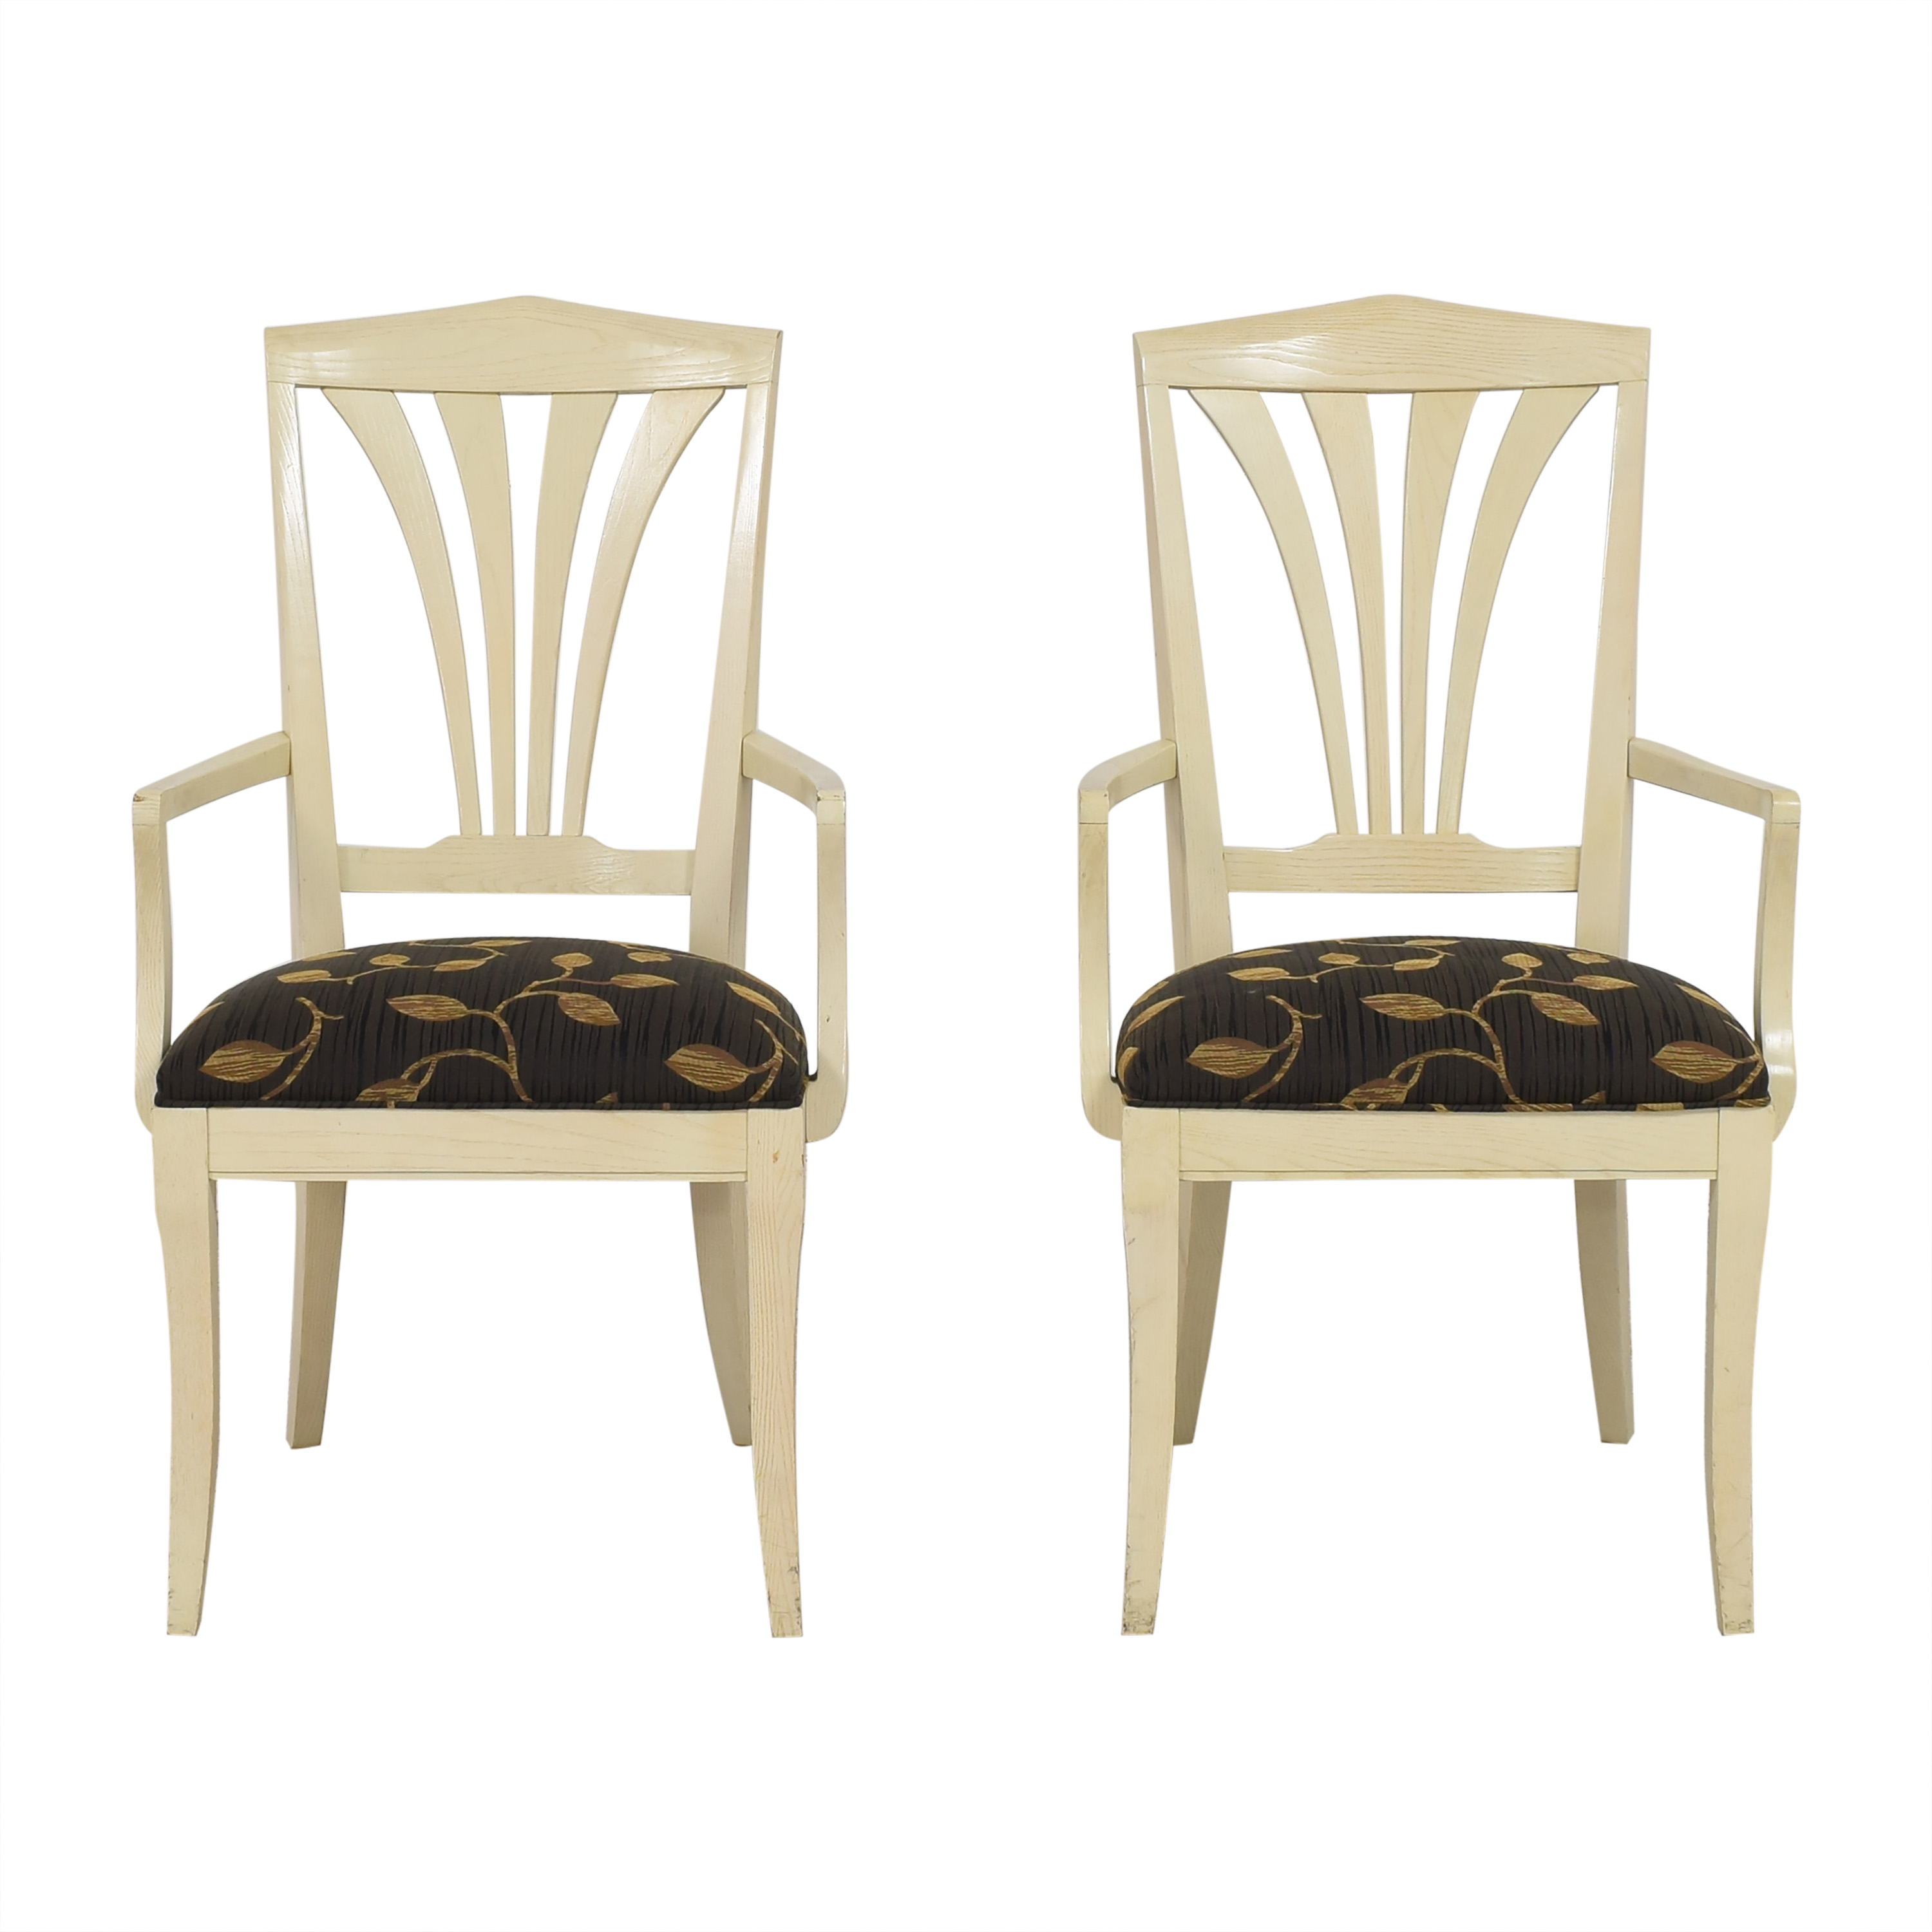 Ethan Allen Ethan Allen Dining Arm Chairs dimensions